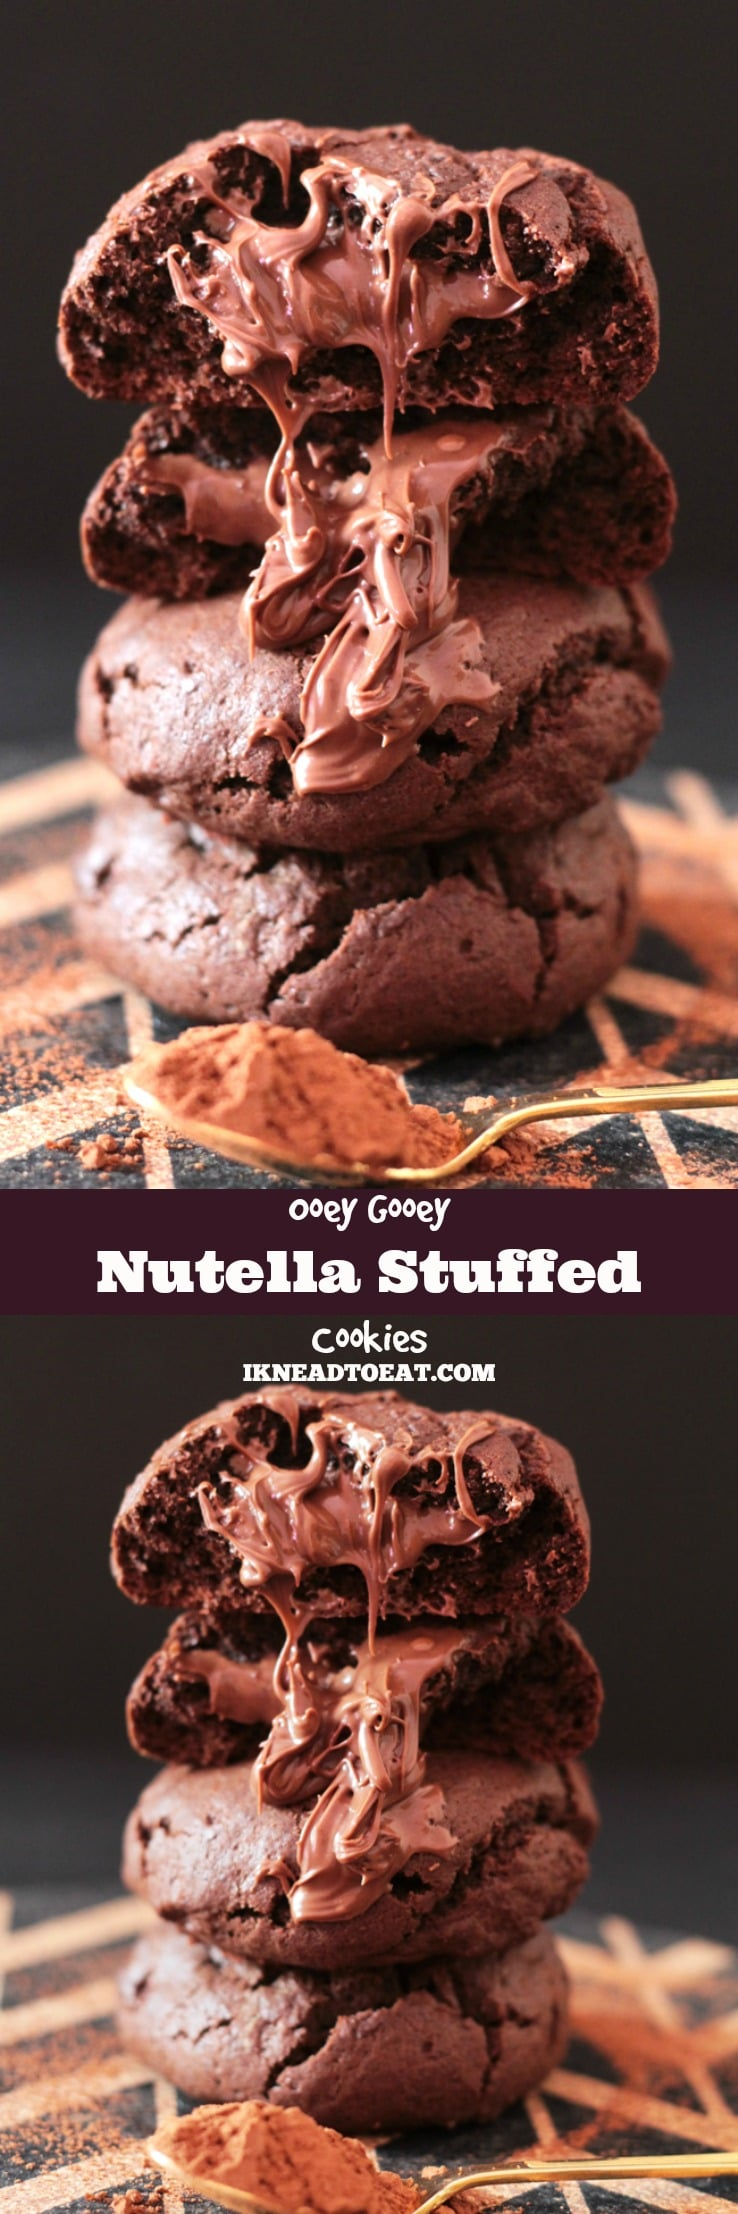 Ooey Gooey Nutella Stuffed Cookies (vertical pin)